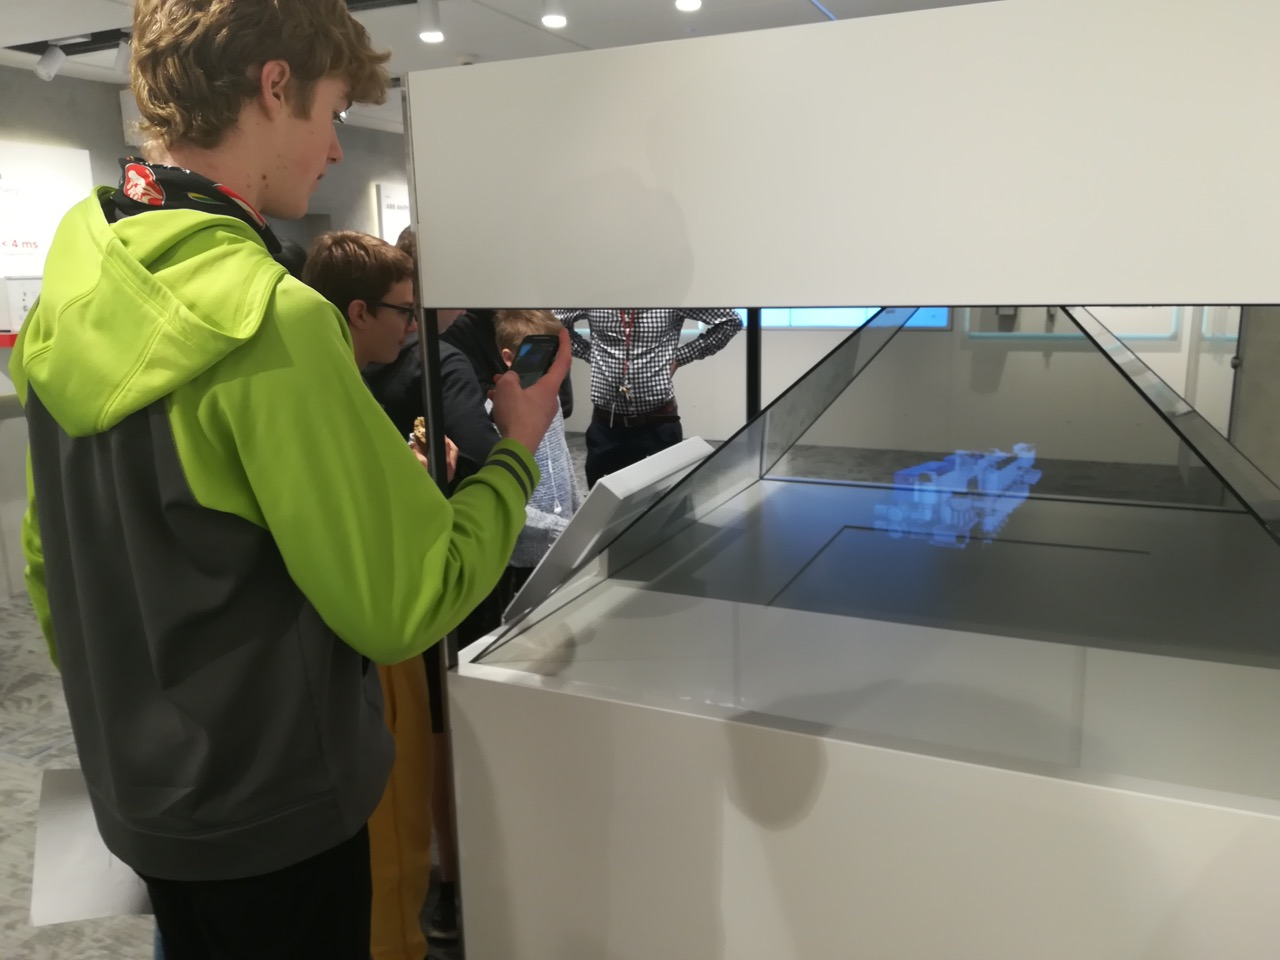 A student photographs the hologram at ABB Robotics